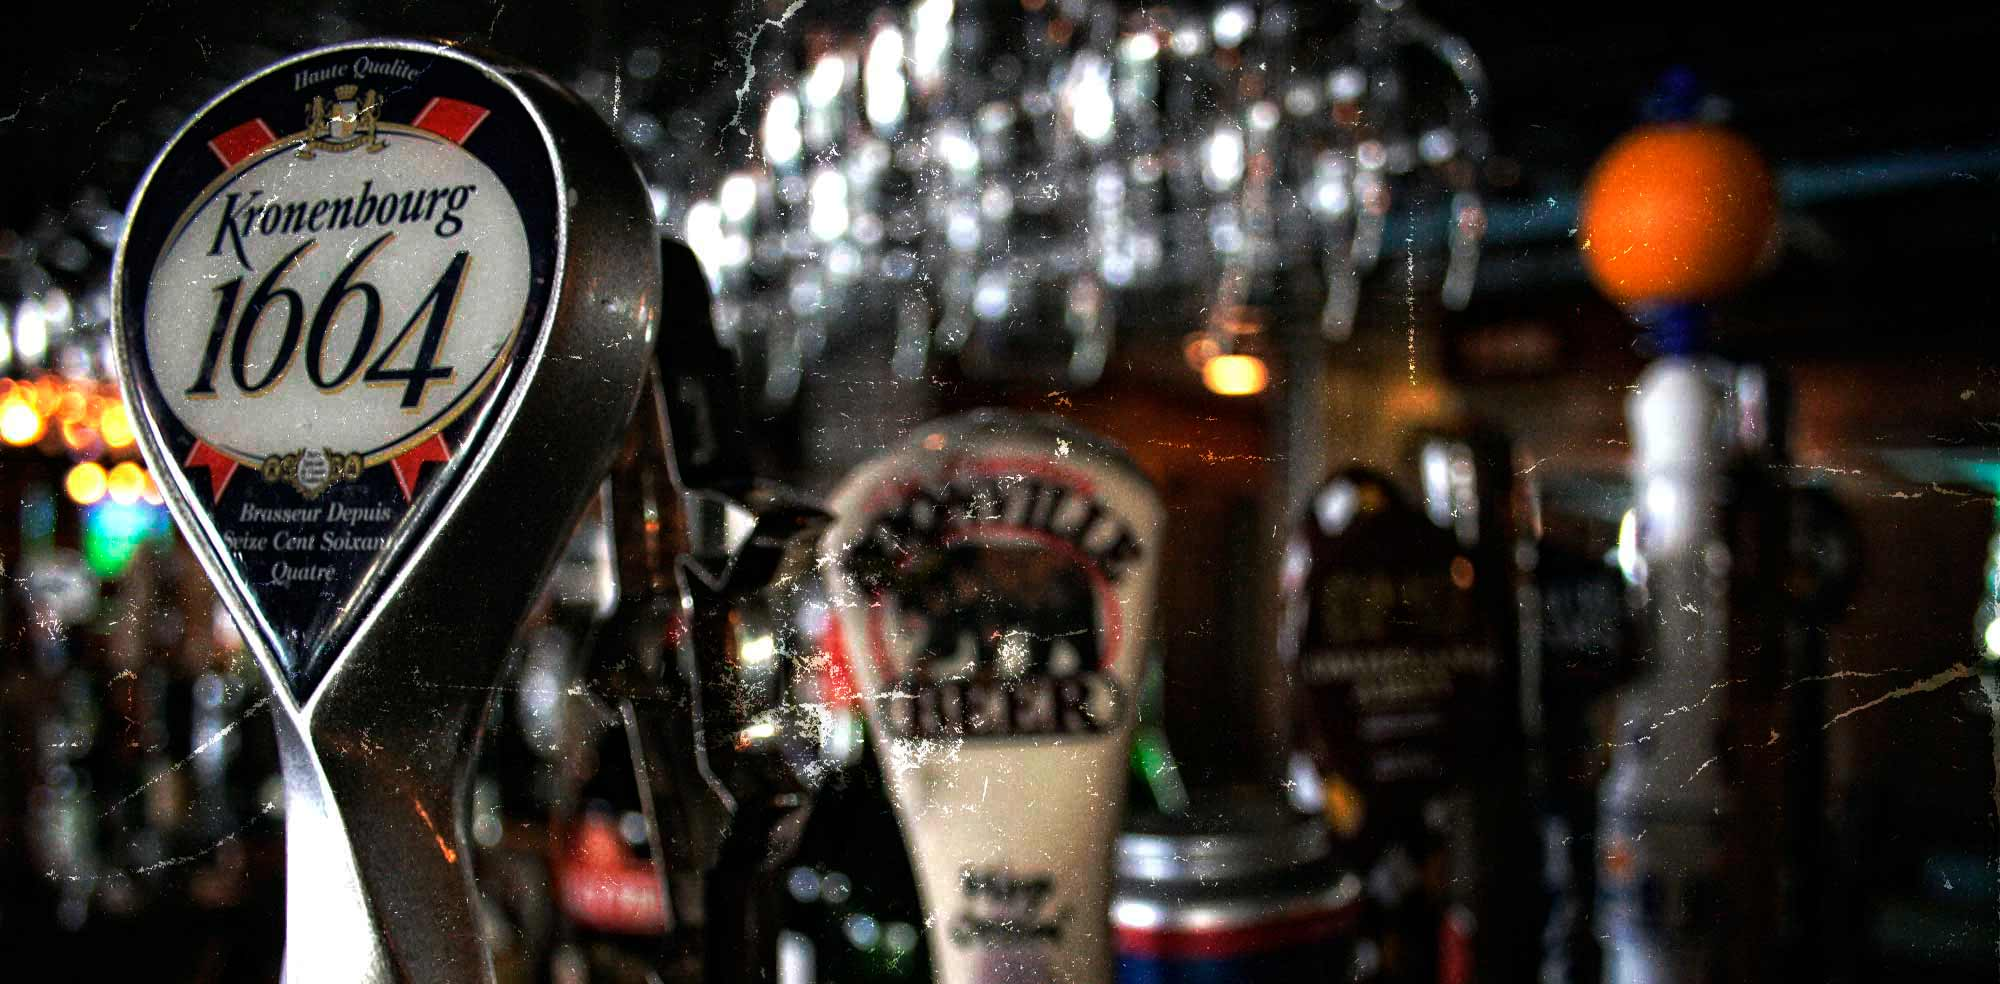 Beer on tap at park tavern delray beach